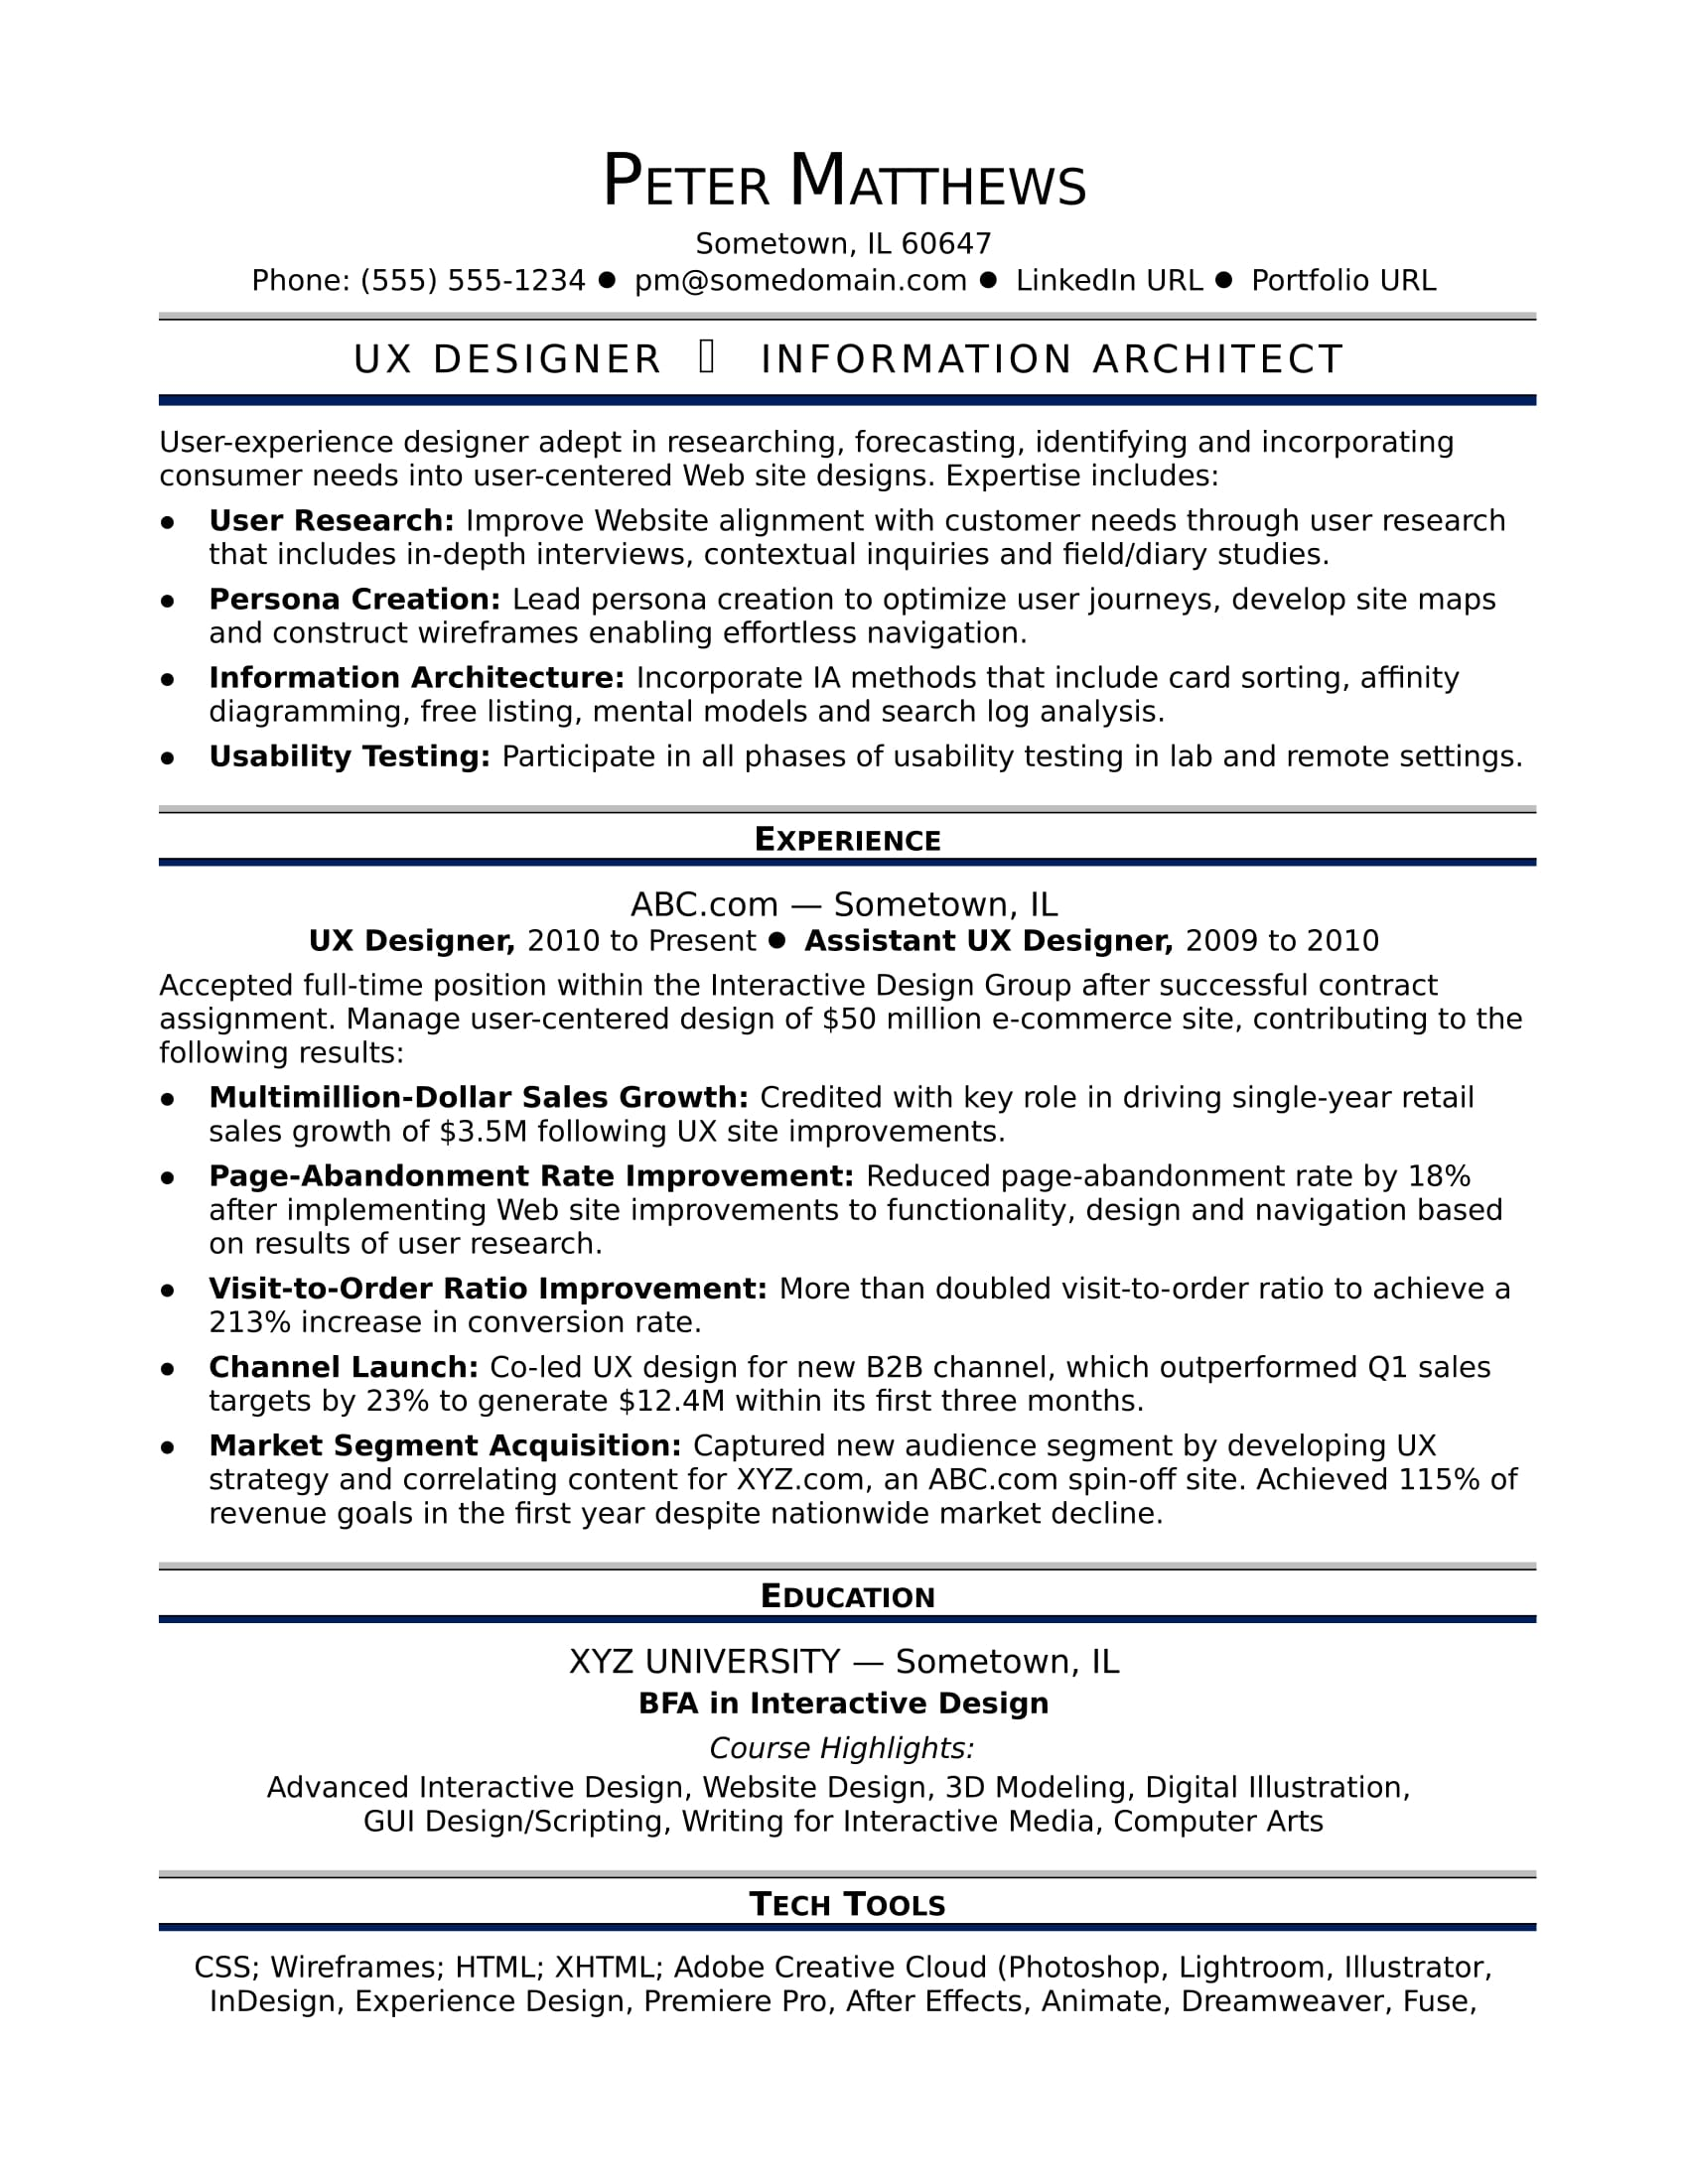 Sample Resume for a Midlevel UX Designer Monstercom